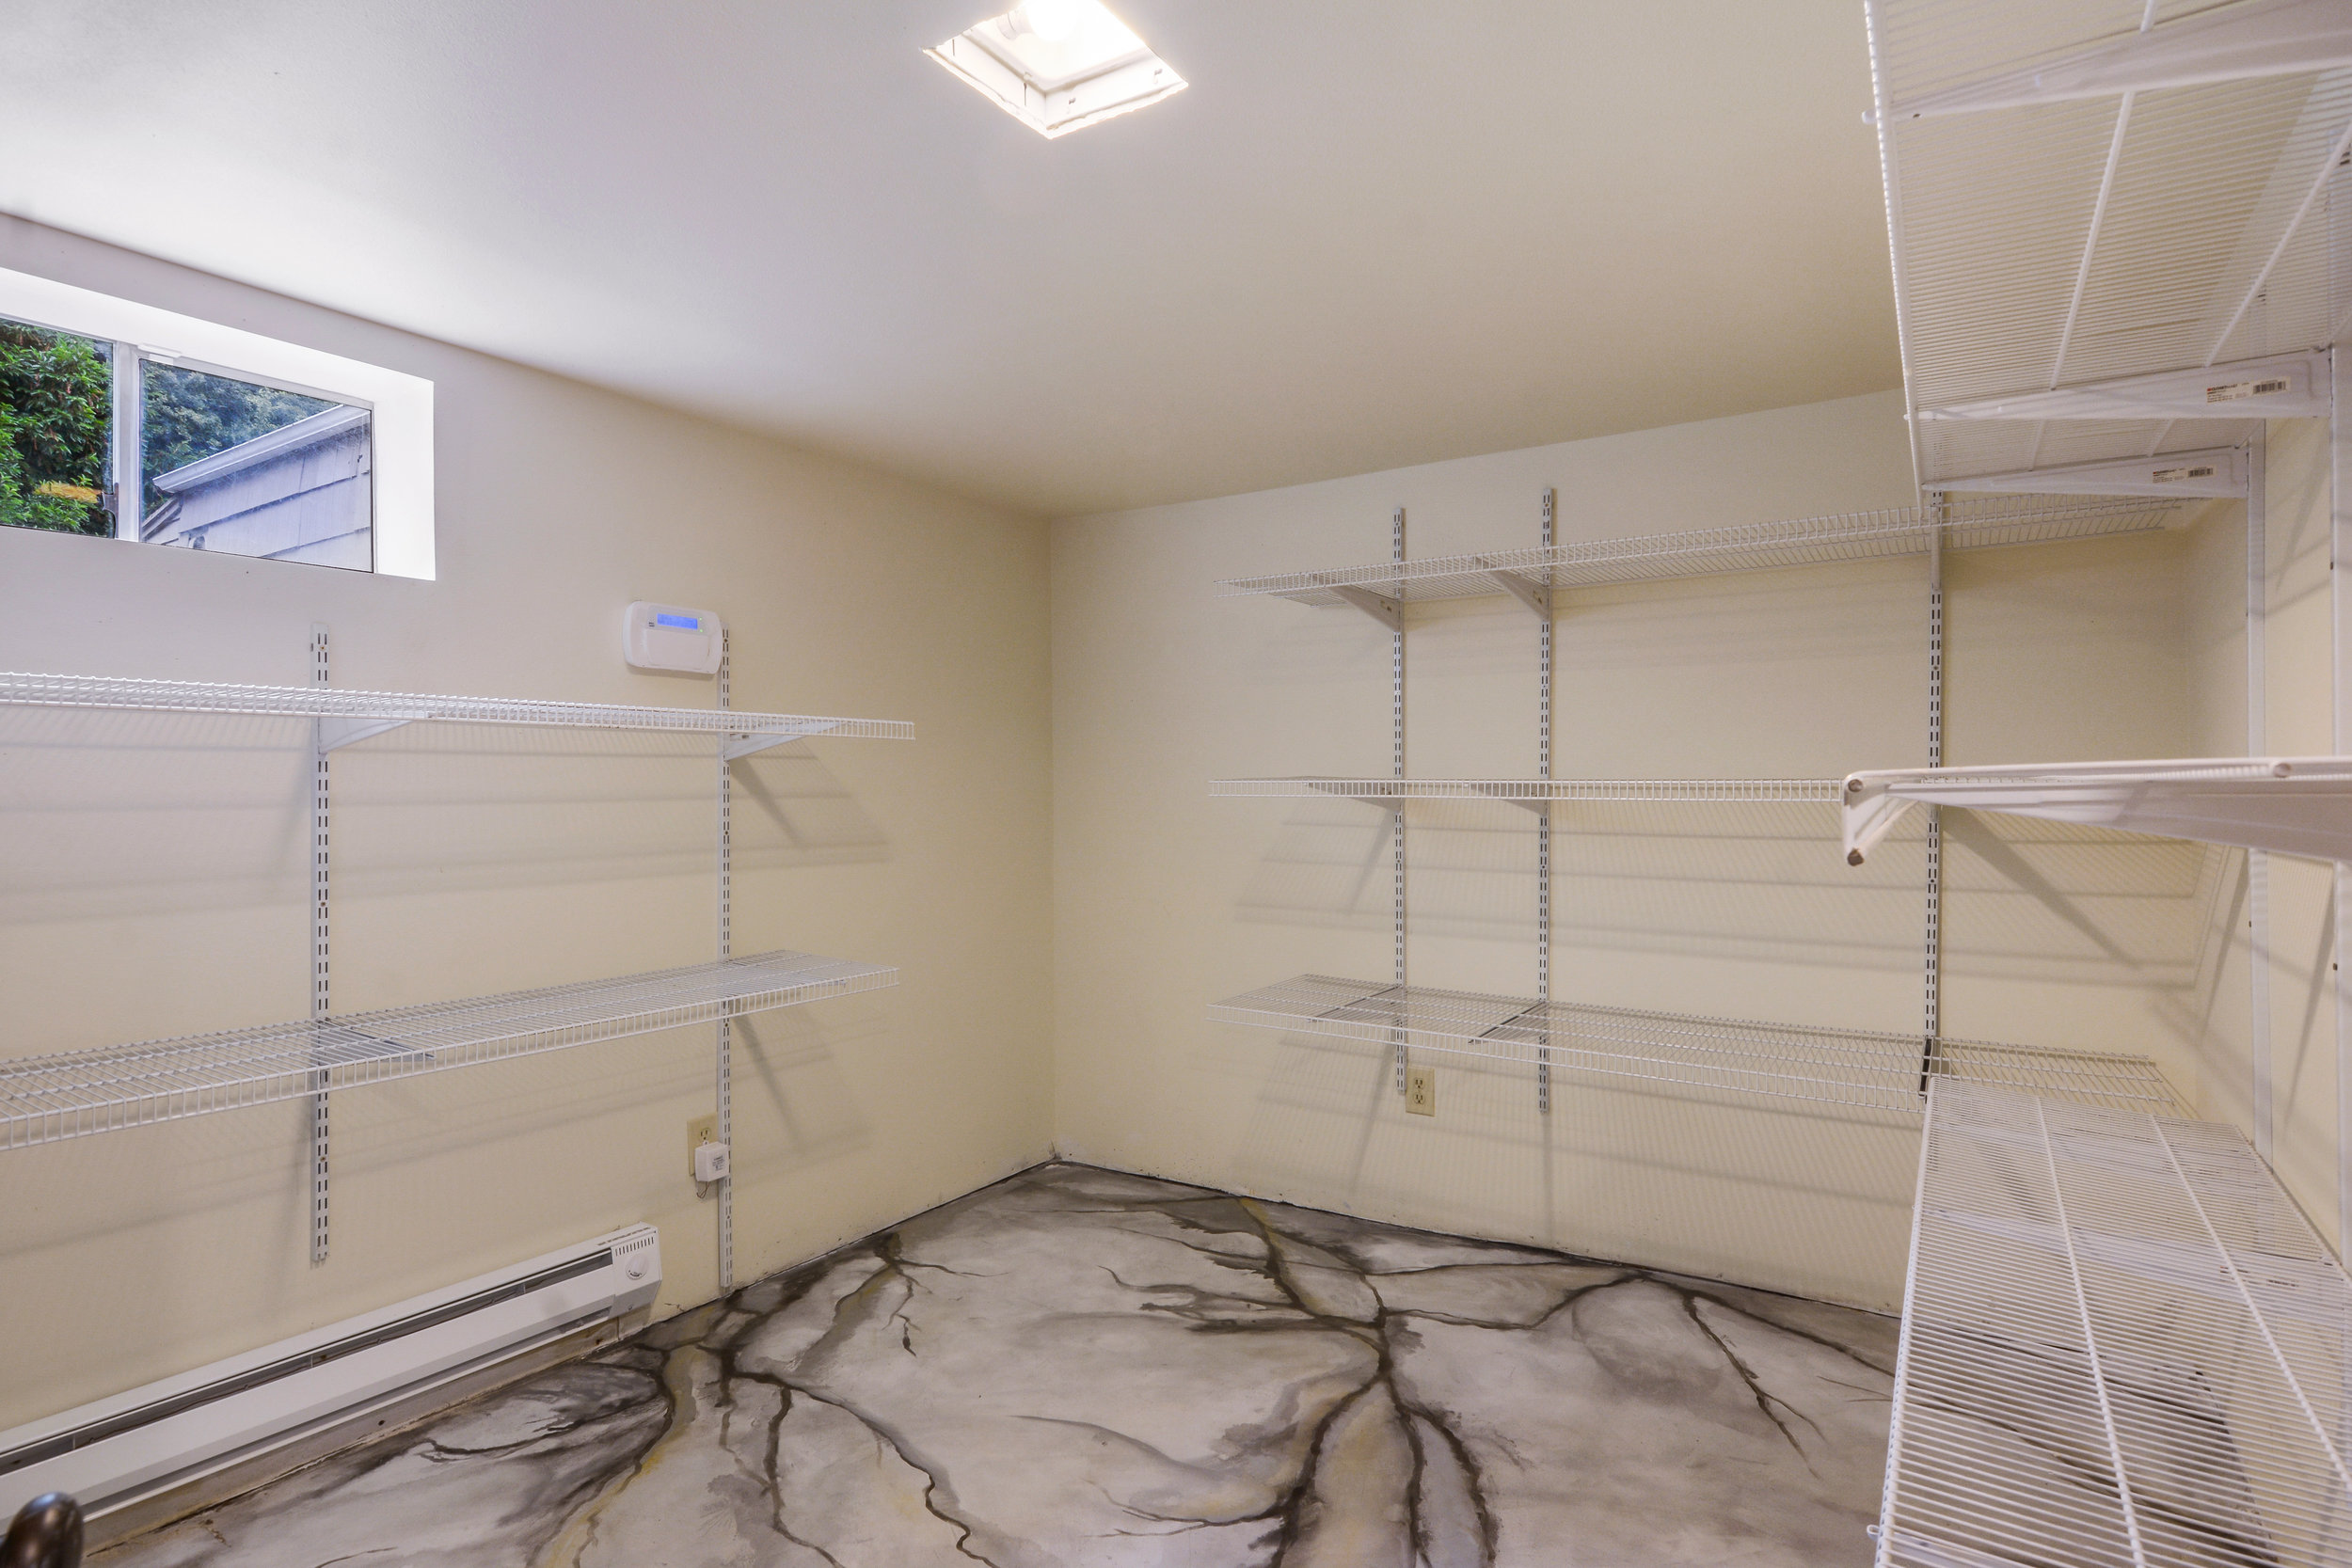 The final room in the basement is this storage room all set with wire shelves to keep the rest of the house uncluttered.